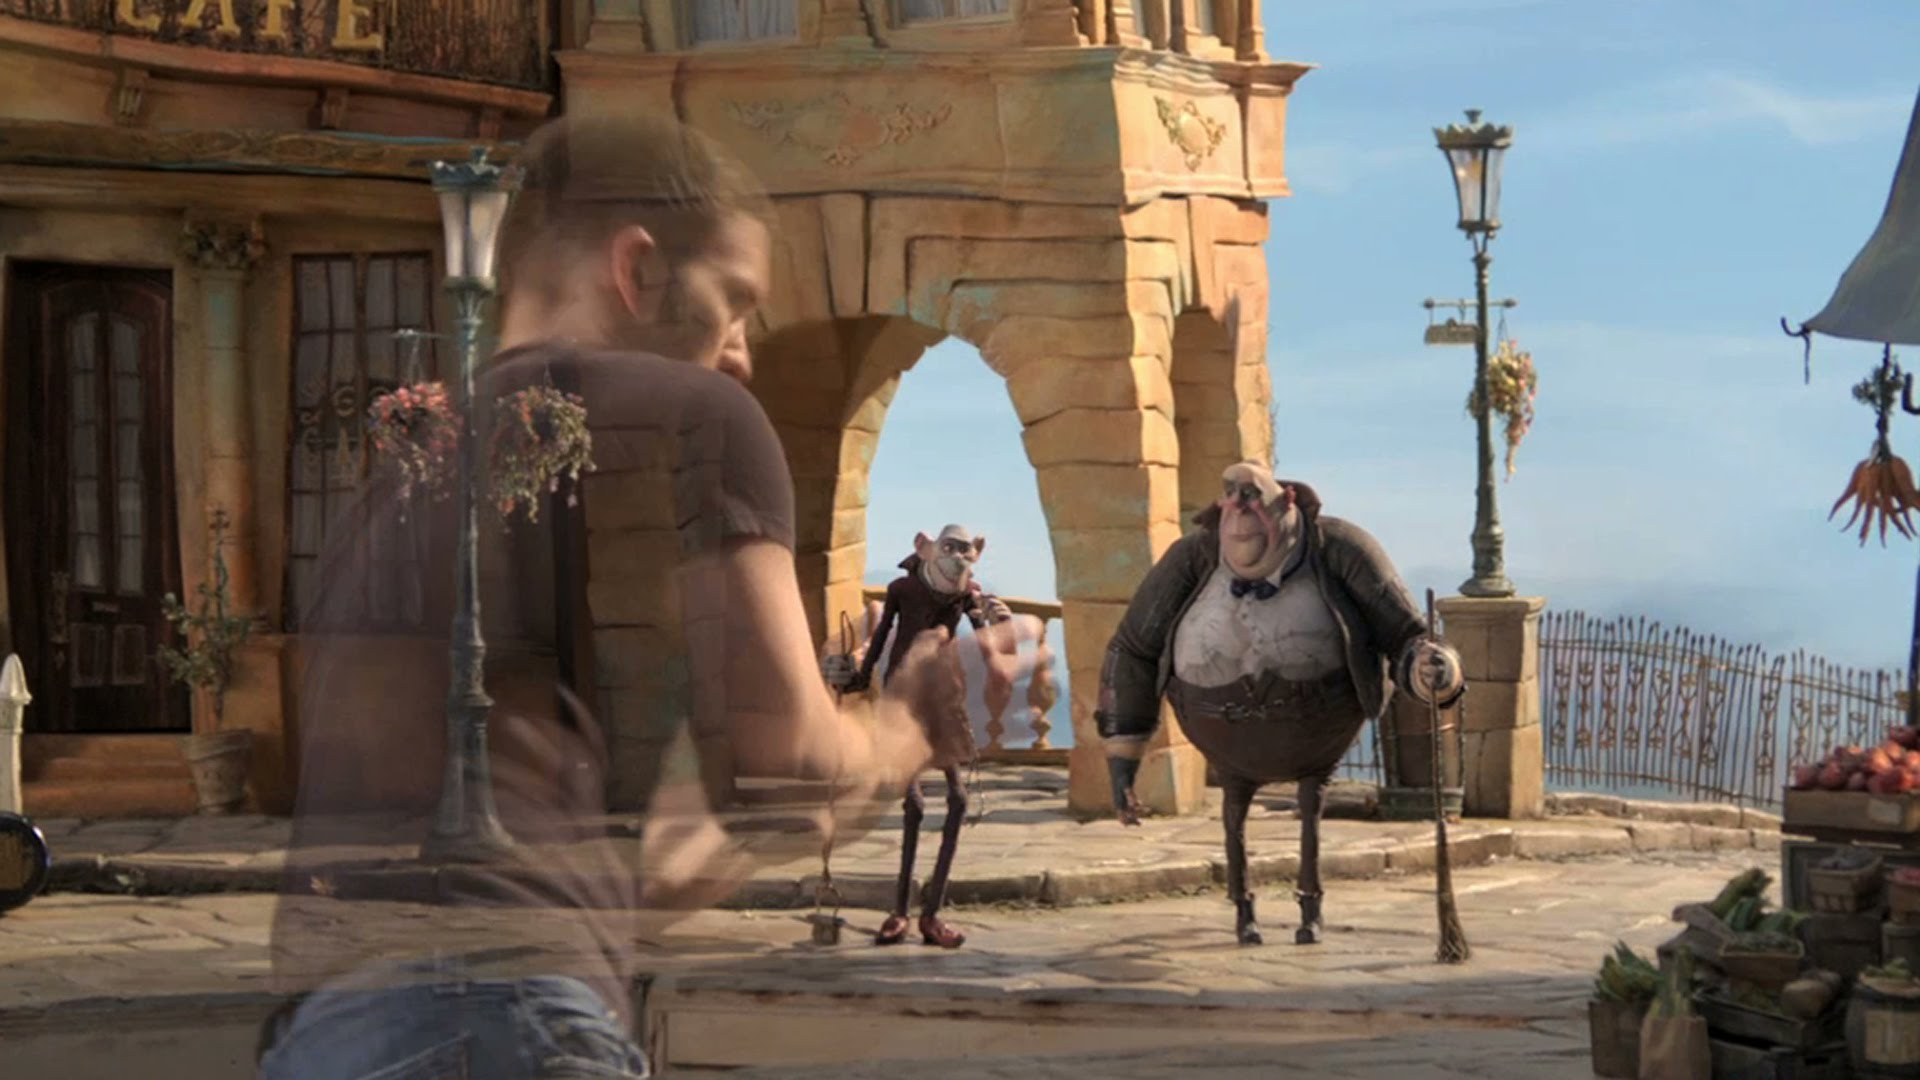 the boxtrolls� characters comment on free will while being